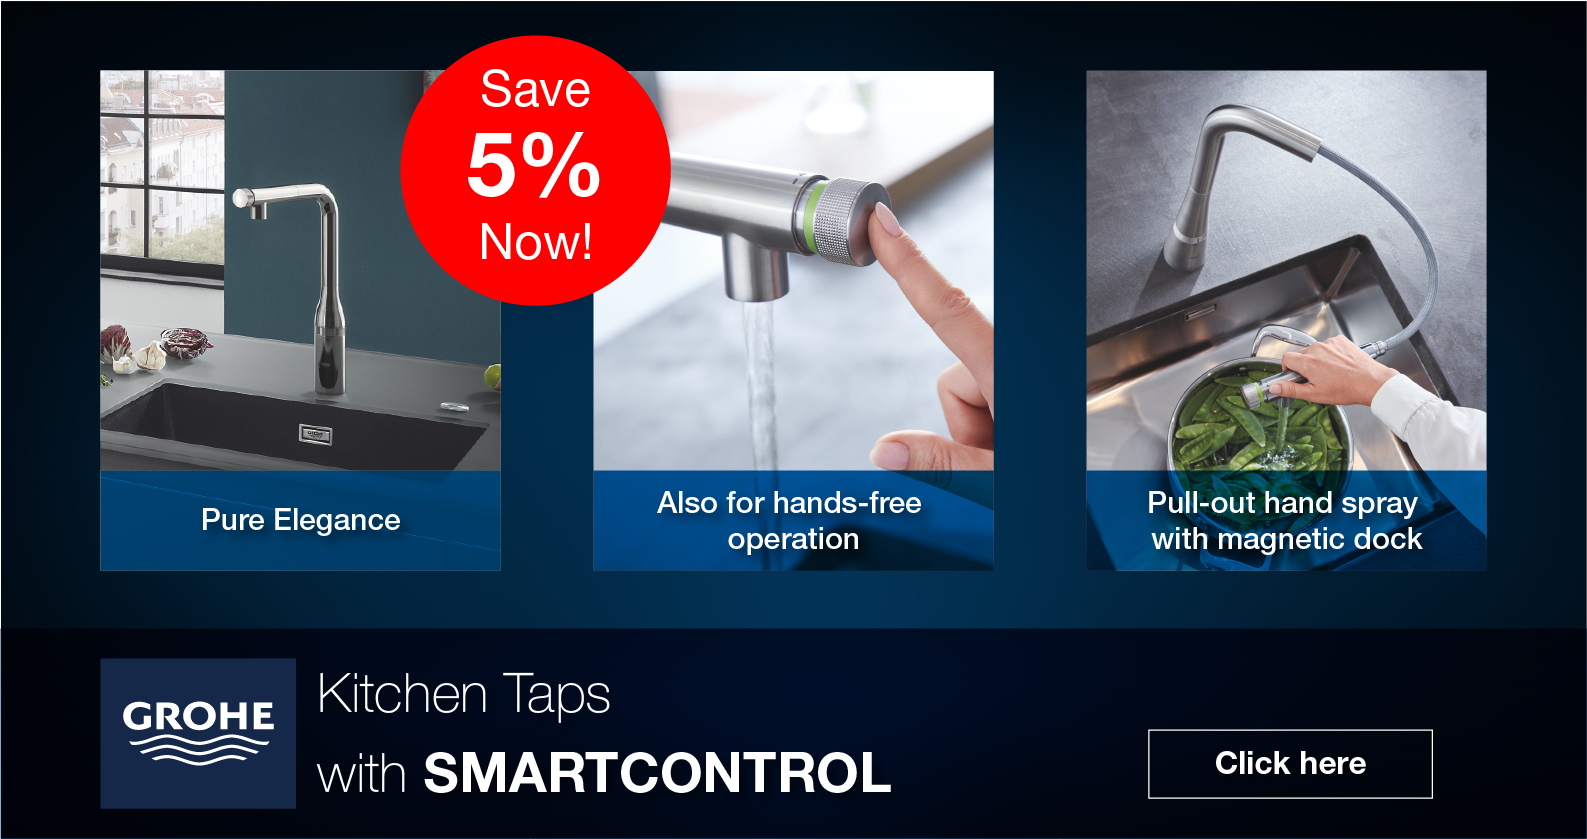 GROHE Kitchen Taps with SmartControl at xTWOstore